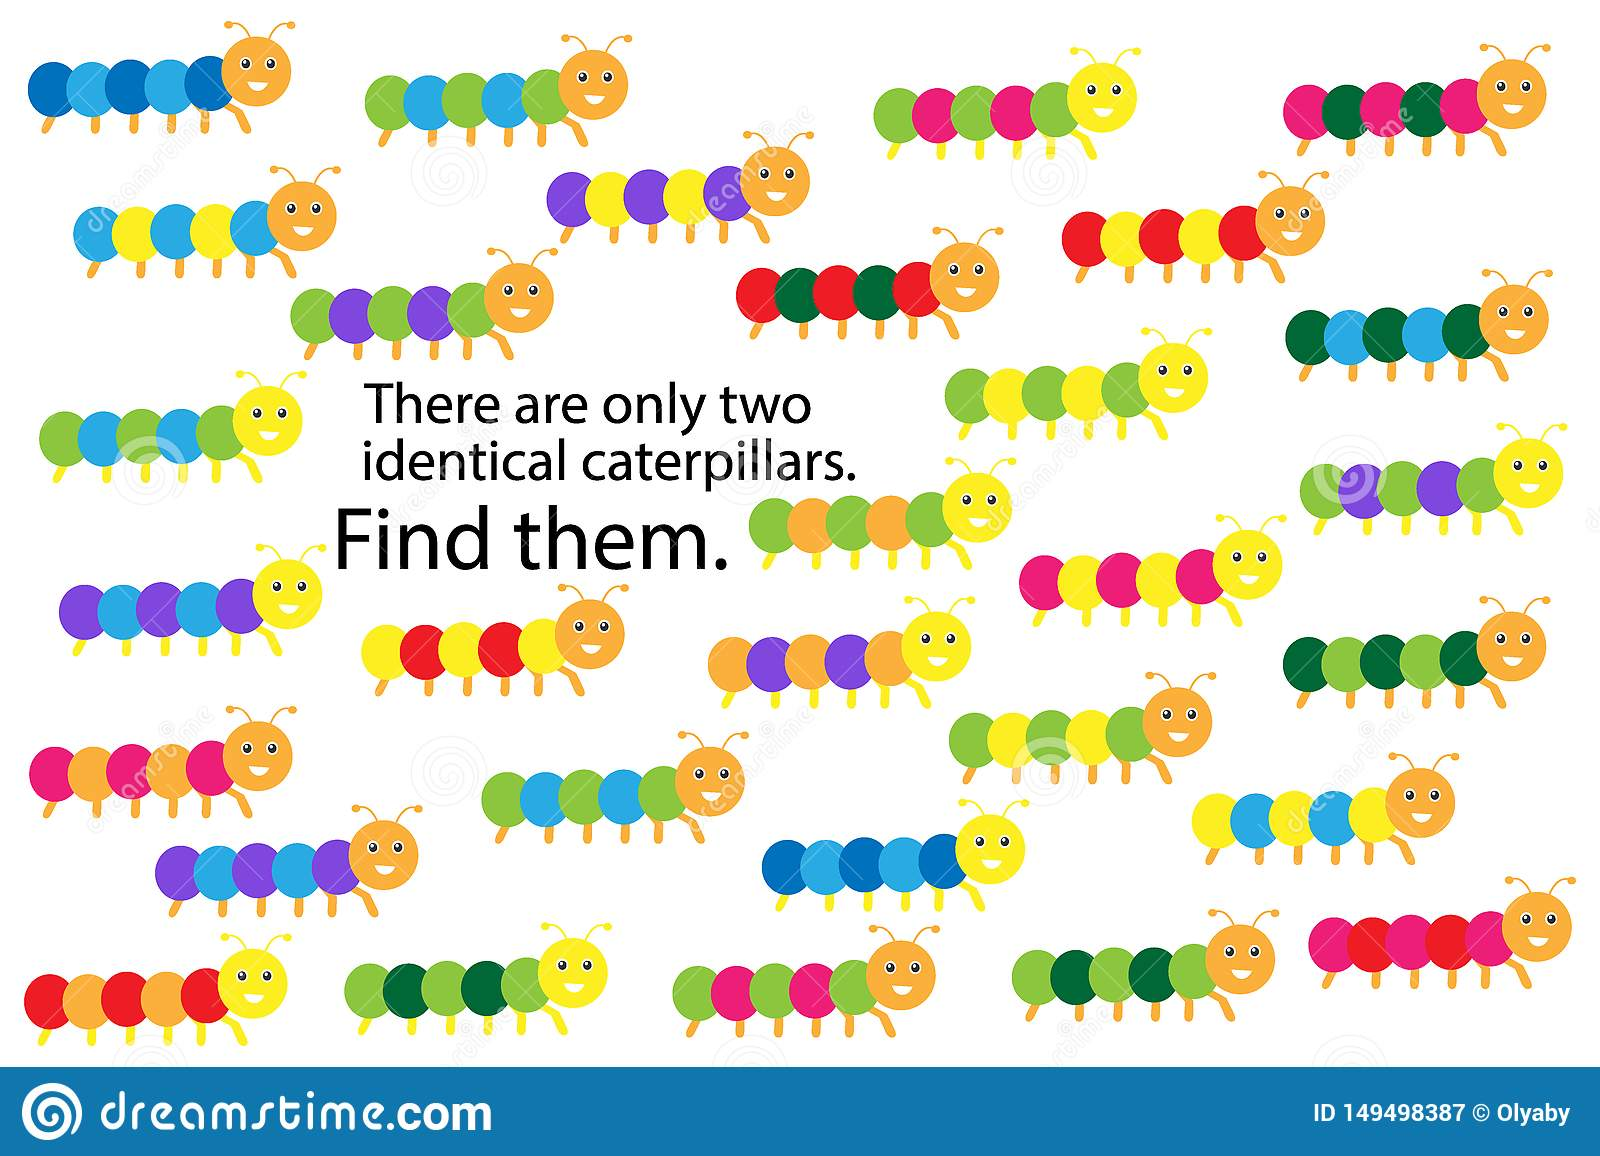 Find Two Identical Caterpillars Spring Fun Education